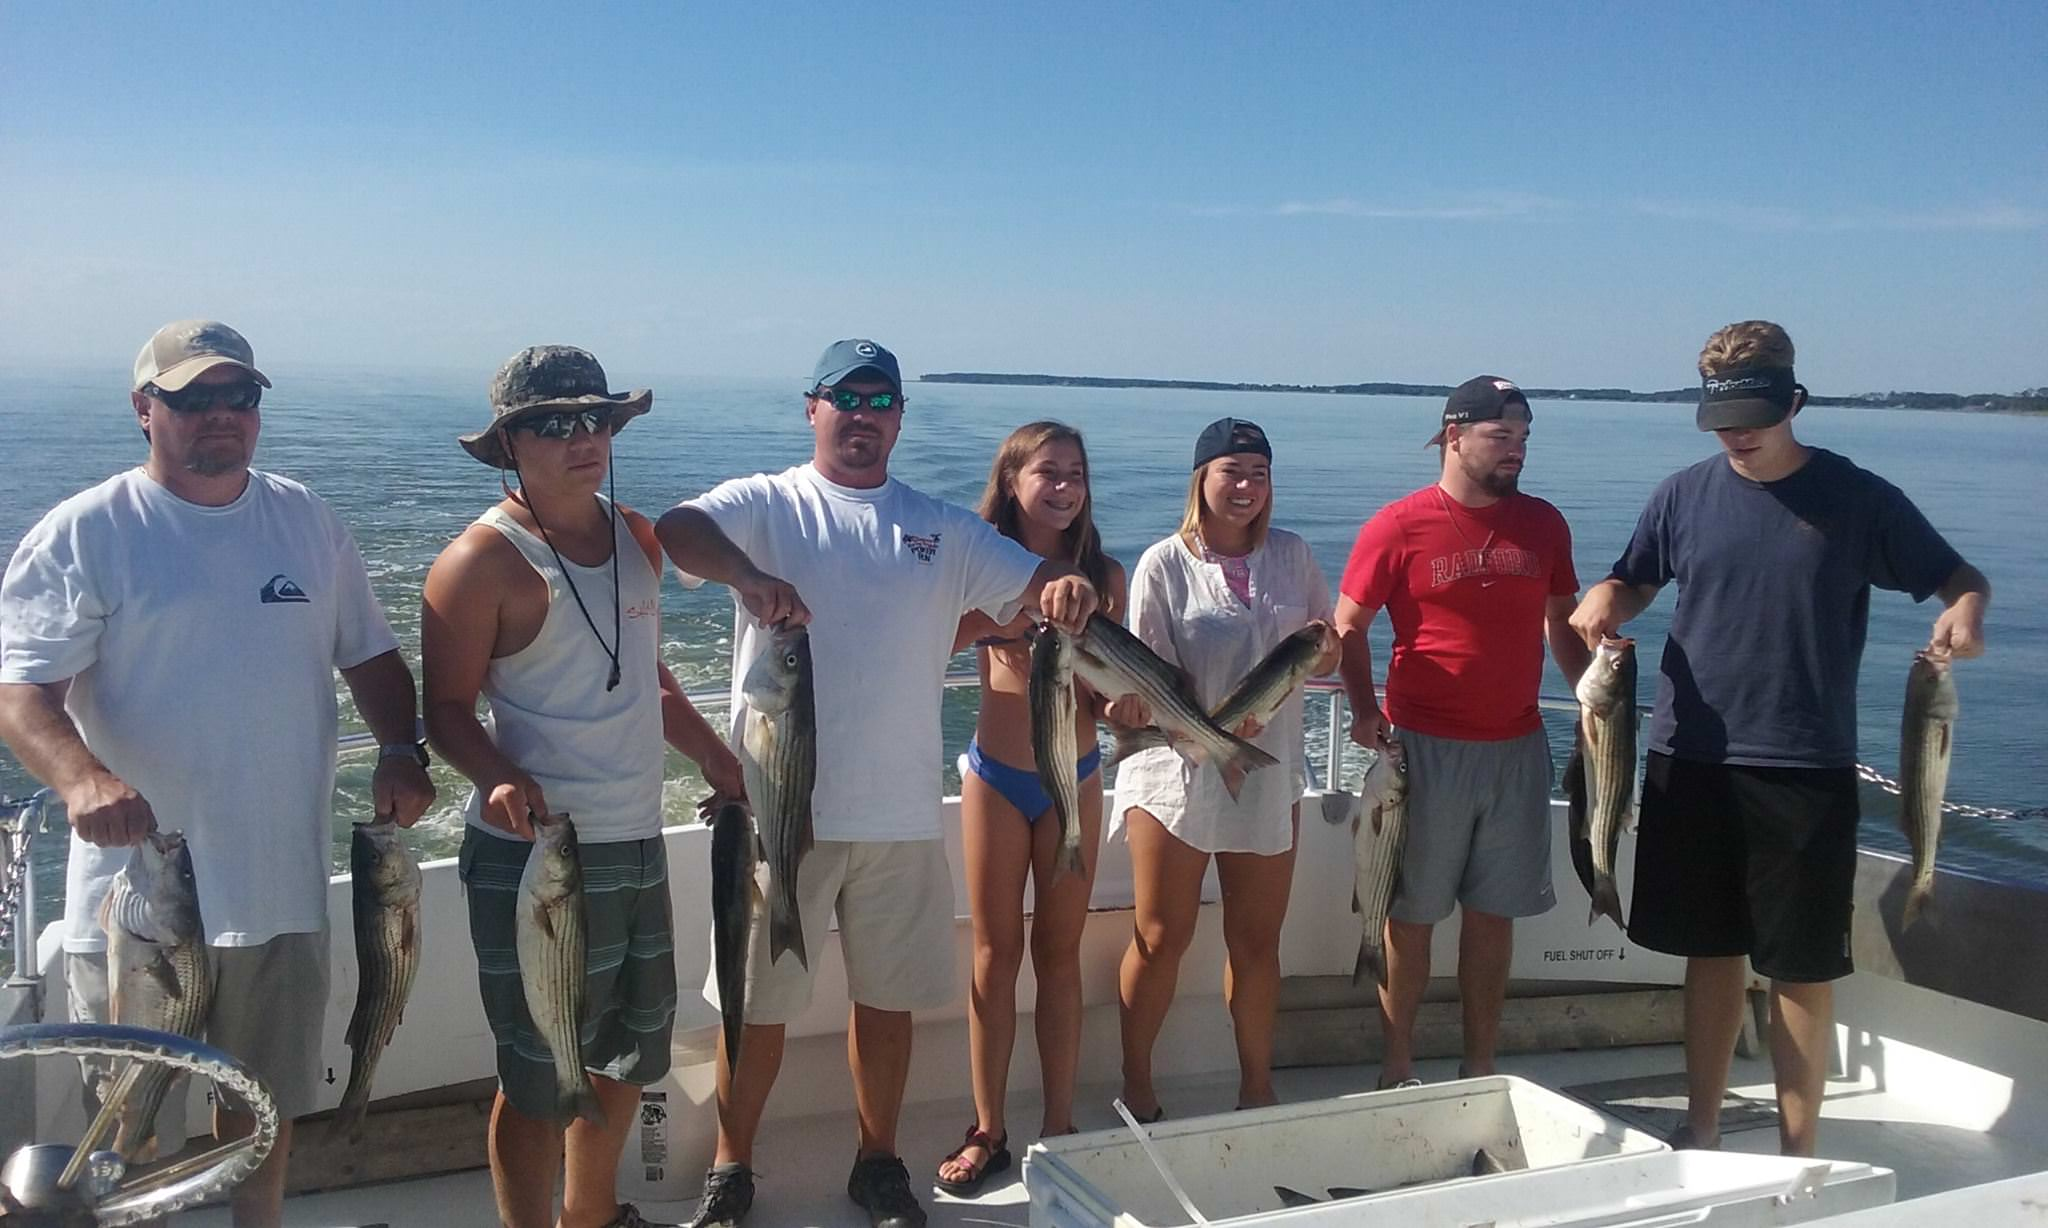 Chesapeake Bay Charter Fishing Action For Striped Bass!